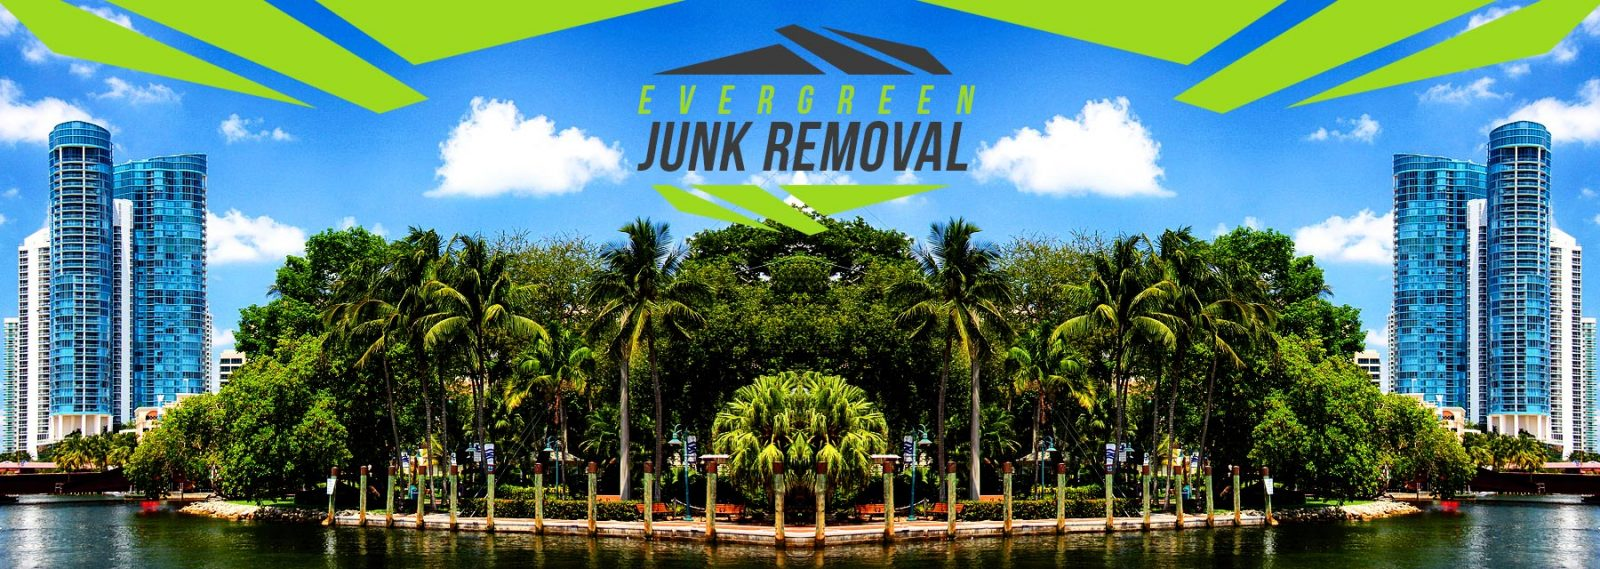 Jacksonville Hot Tub Removal Company